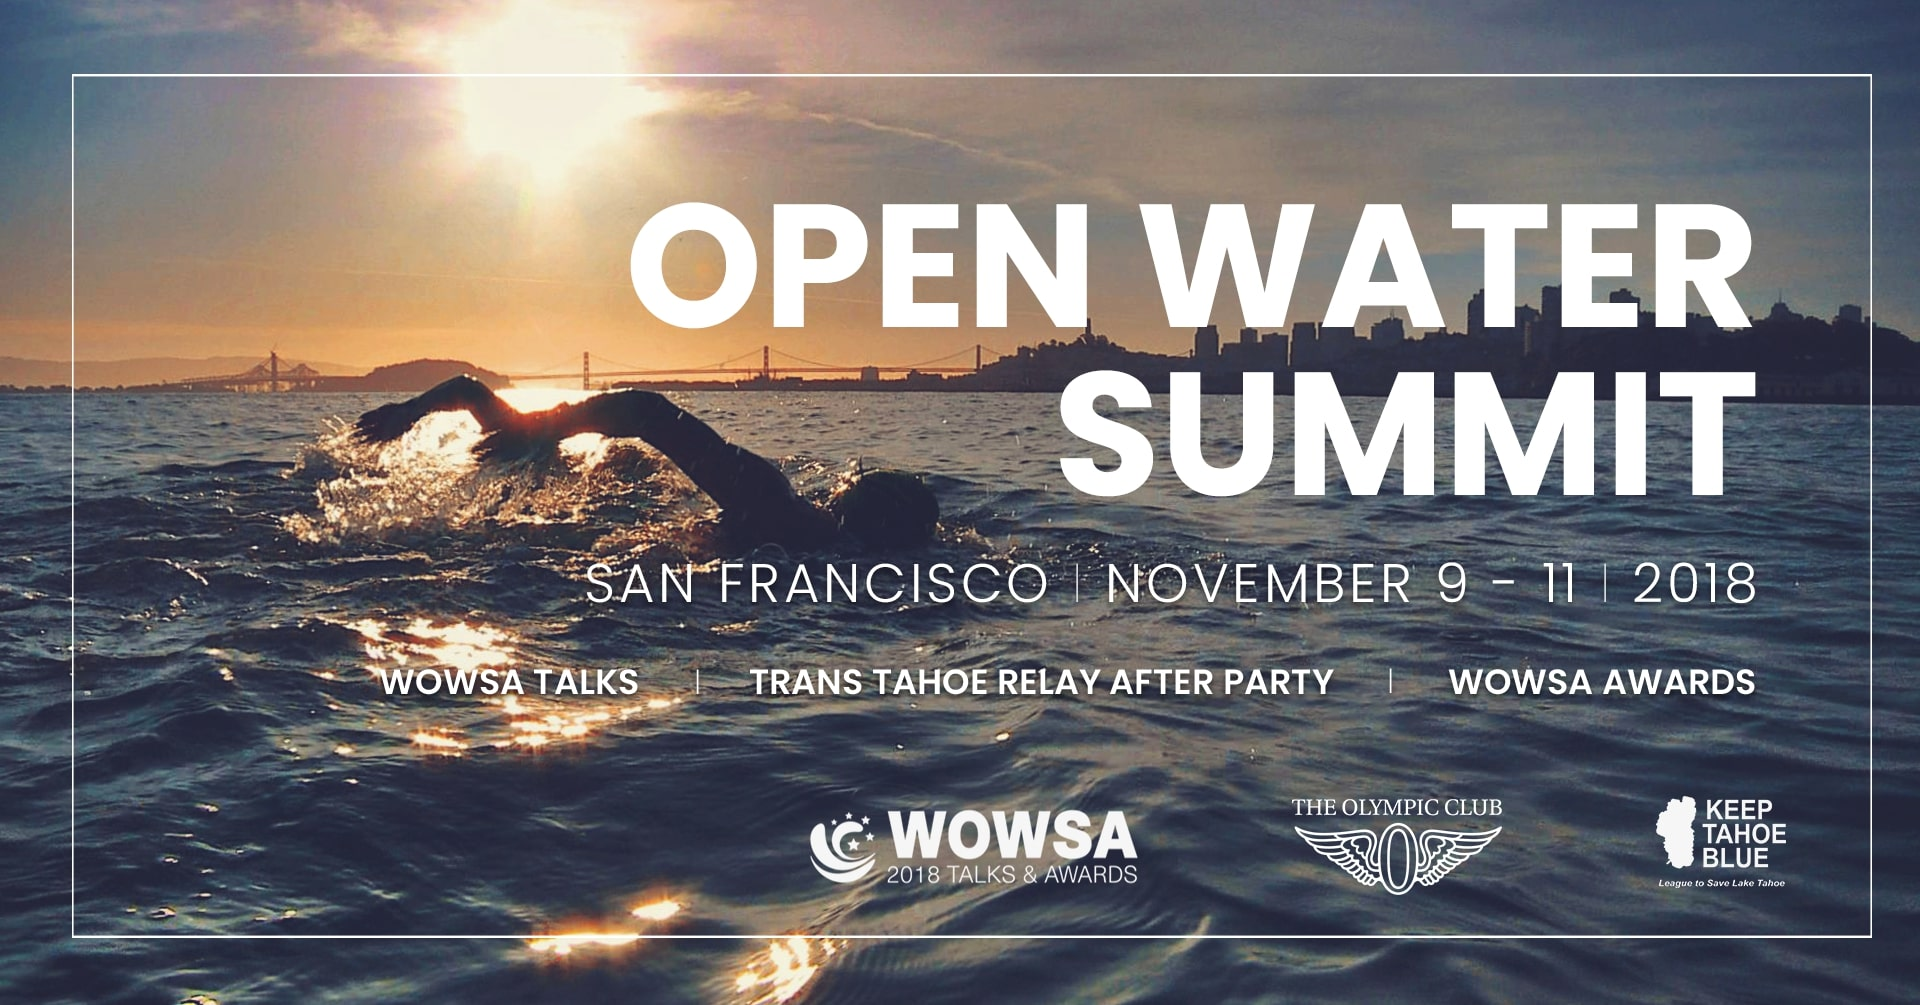 2018 WOWSA Awards Set for Nov. 10th at Oldest Athletic Club in U.S.